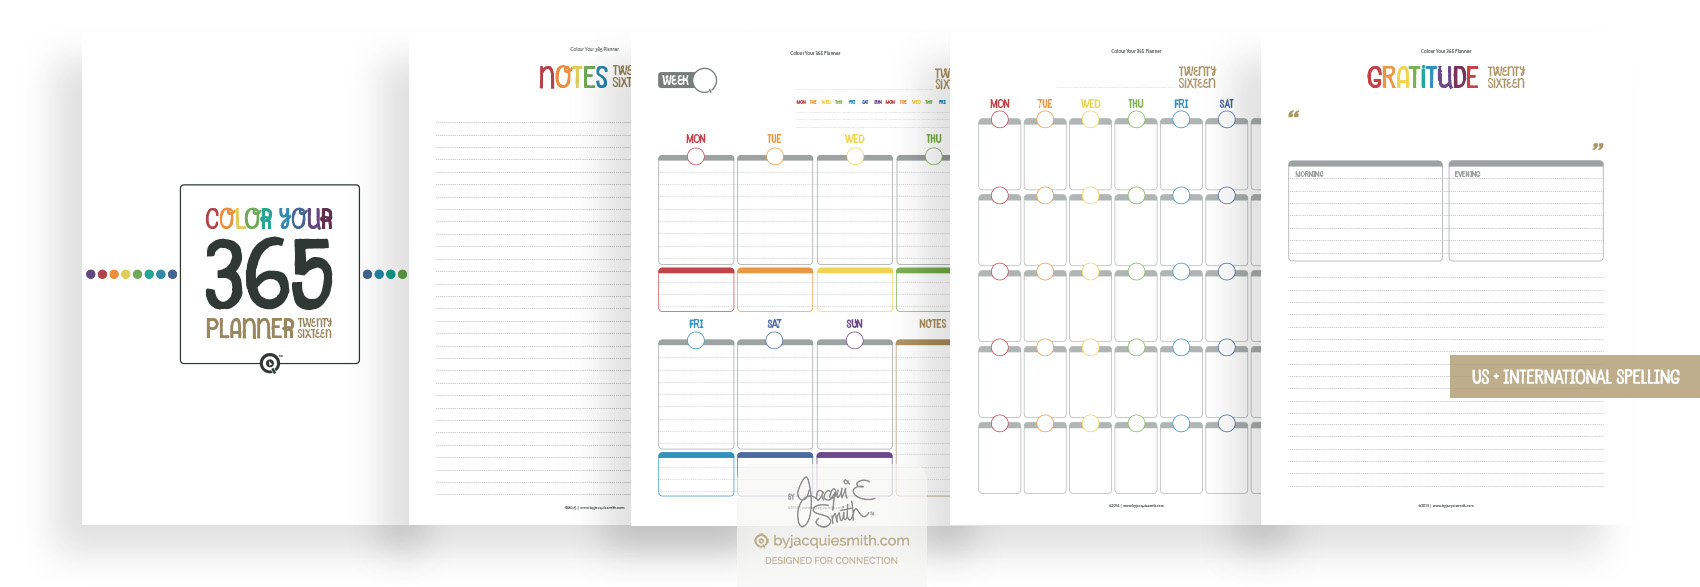 Colour Your 365 printable planner at byjacquiesmith.com